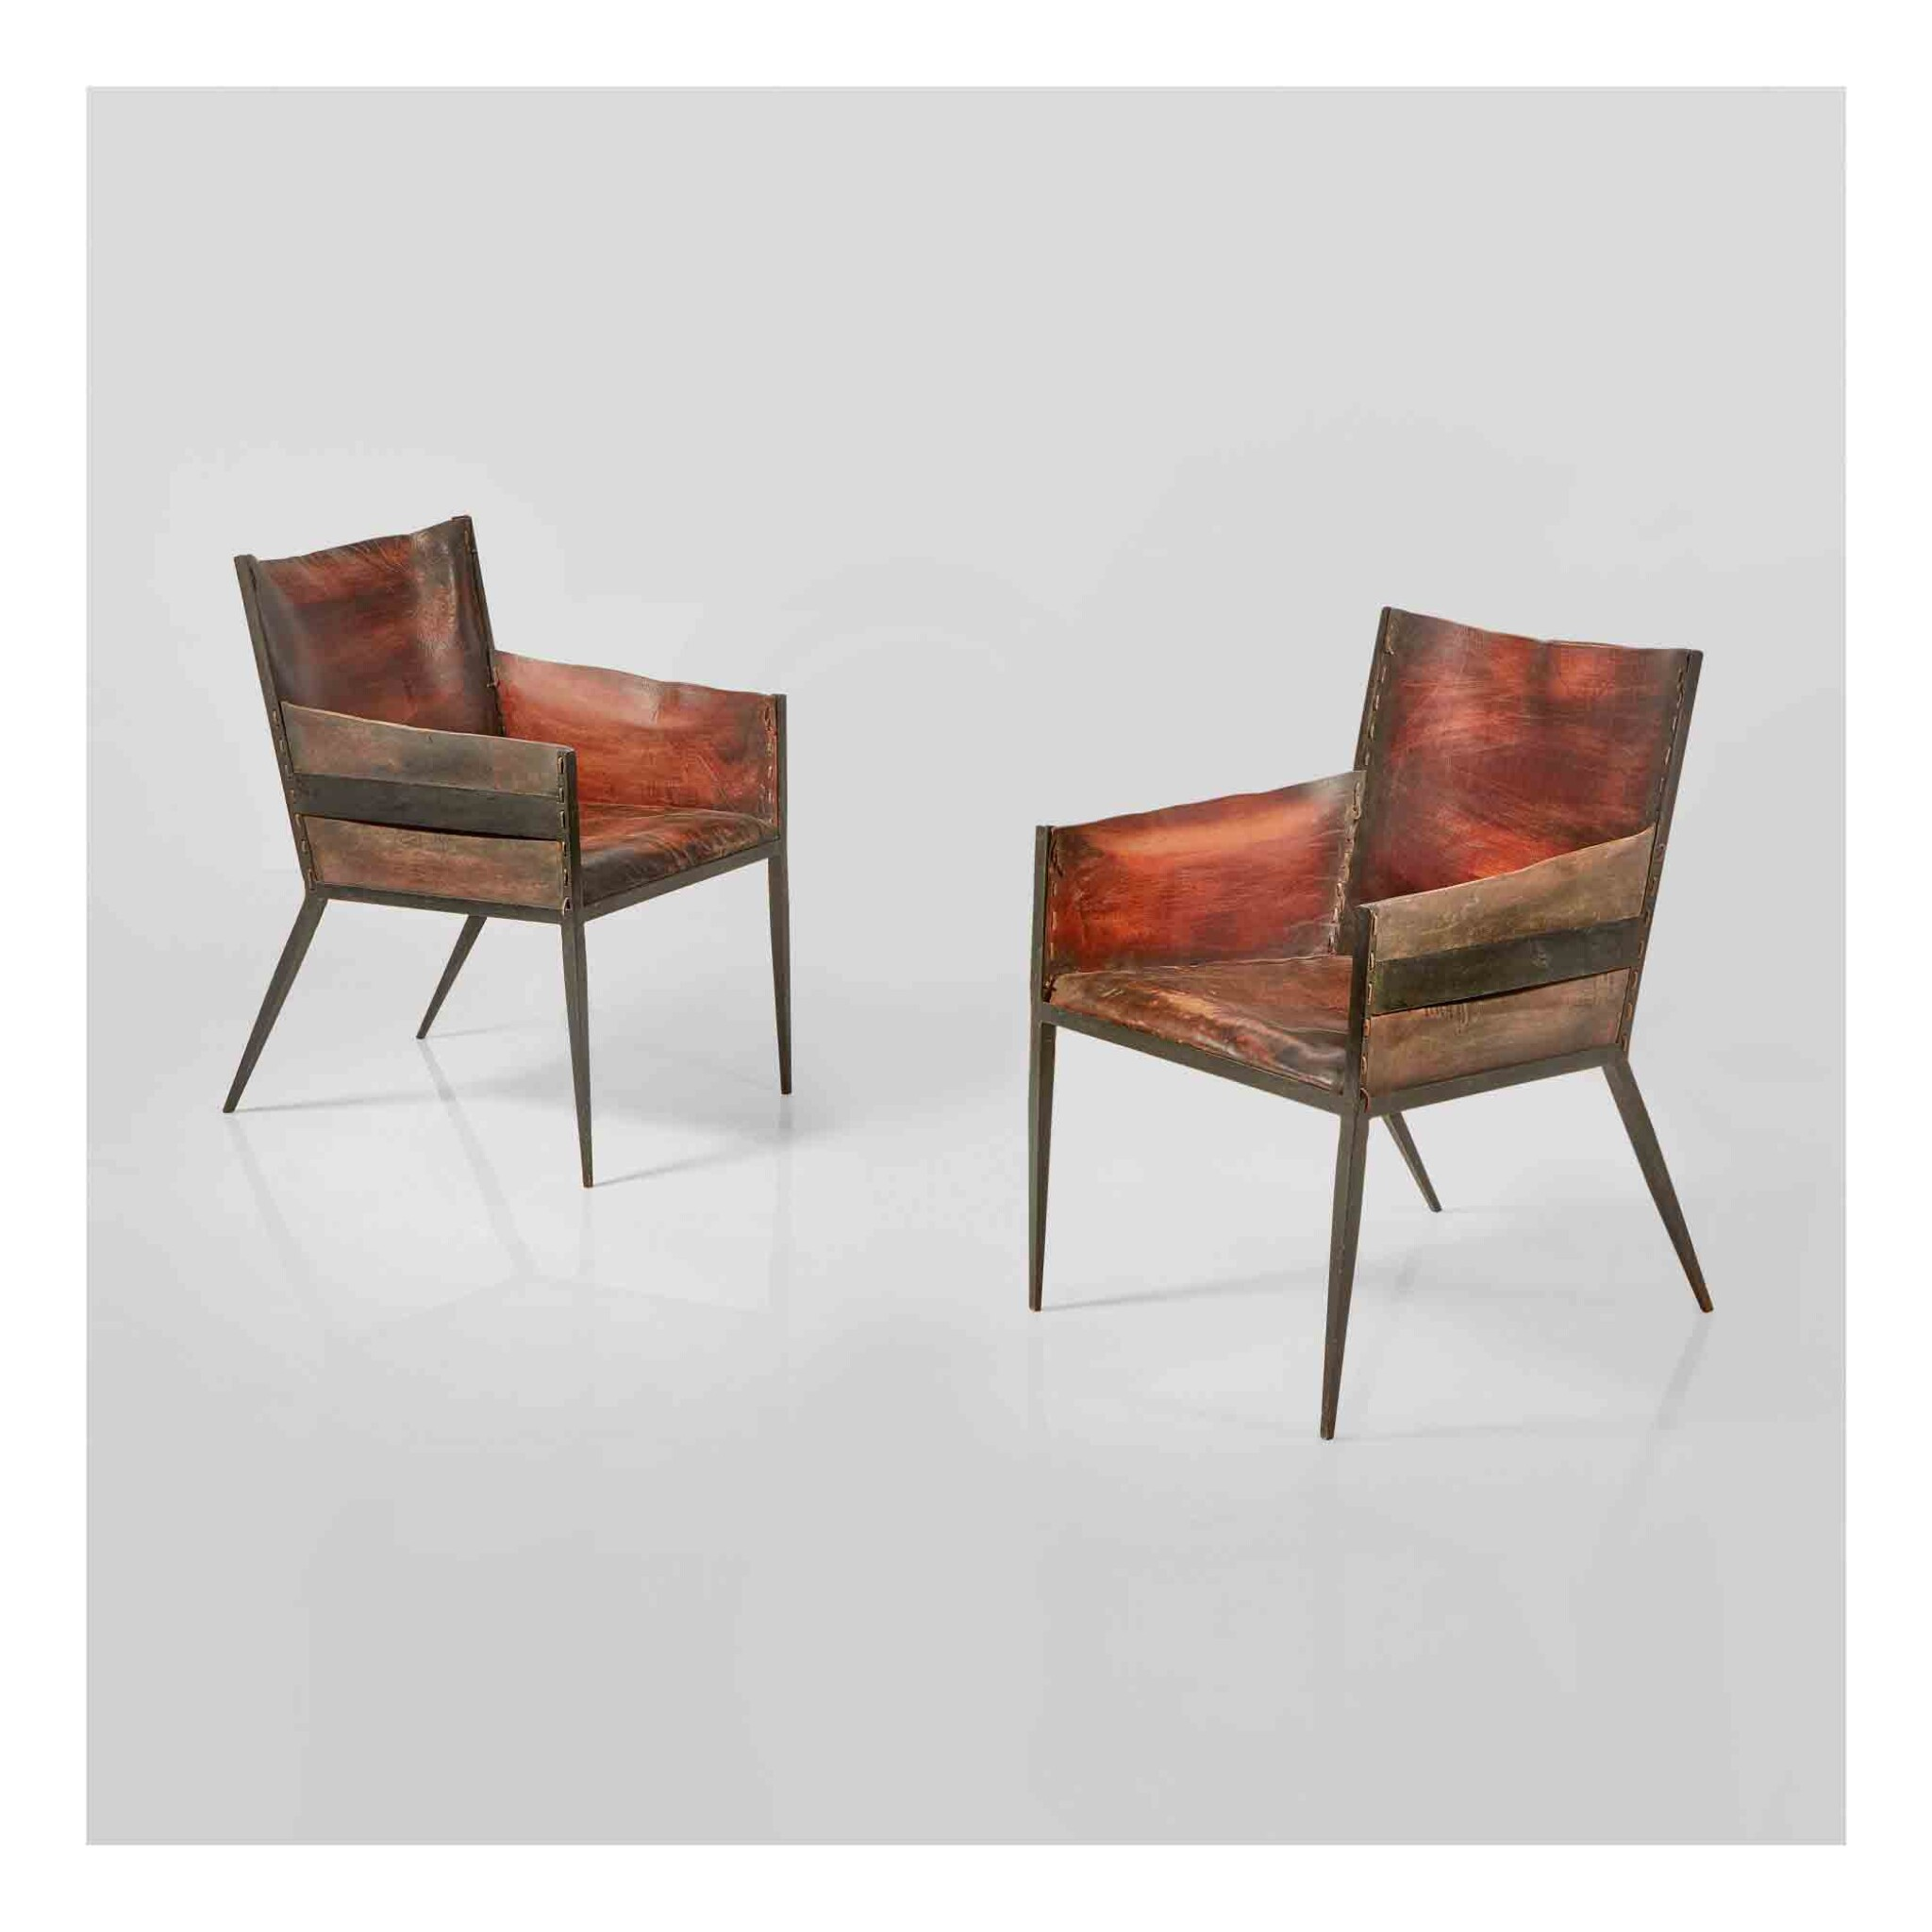 View 1 of Lot 350. Pair of Armchairs.